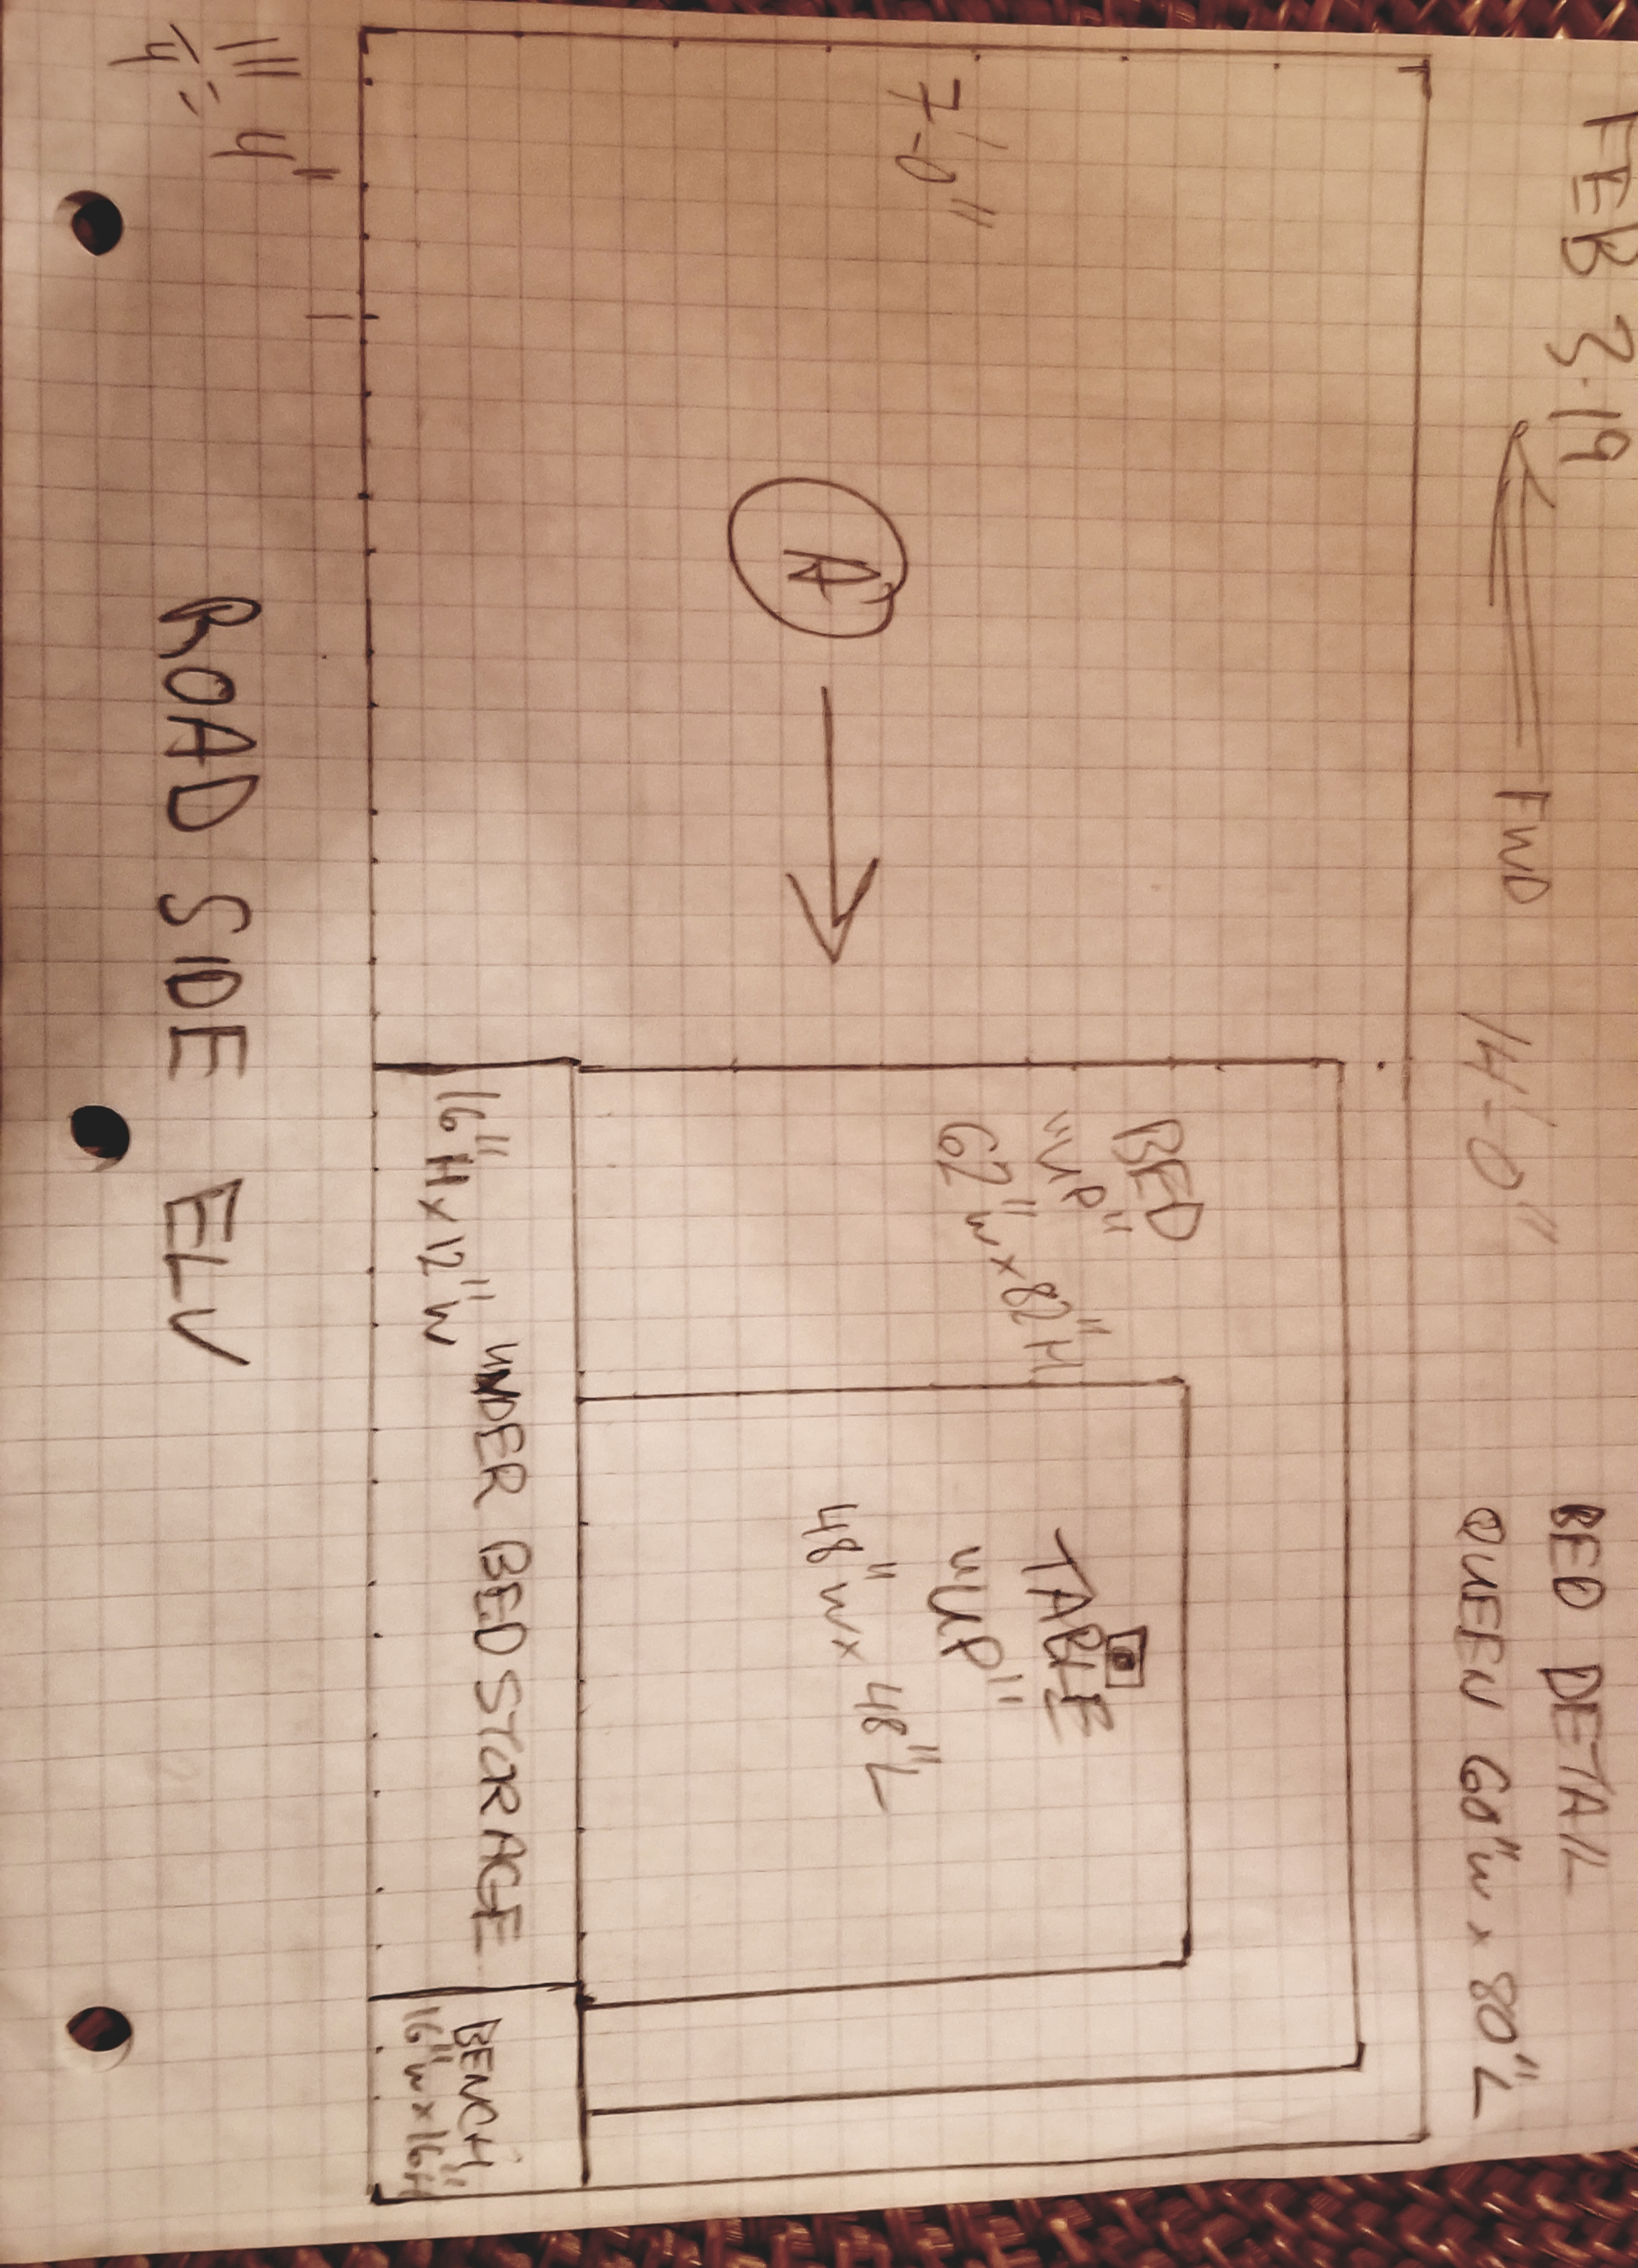 Road side elevation/section at bed/table